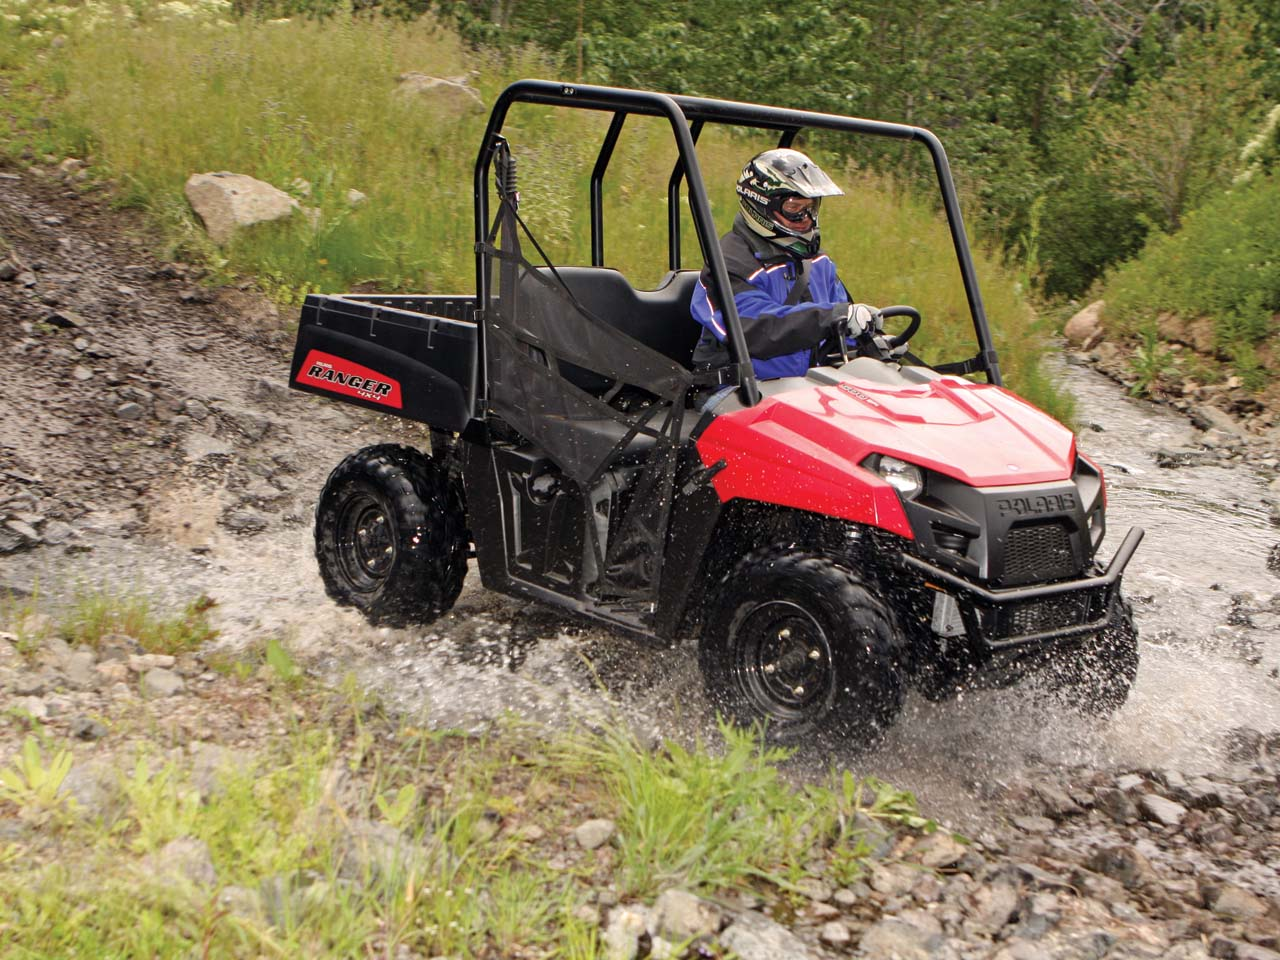 2013 Polaris Sportsman 500 Ho Reviews   Upcoming Cars 2020 on polaris sportsman 500 ho exhaust, polaris sportsman 335 wiring diagram, polaris sportsman 500 ho carburetor, 2008 polaris sportsman 500 wiring diagram, polaris sportsman 500 wiring diagram pdf, 2002 polaris sportsman 500 wiring diagram, 2000 polaris sportsman 500 wiring diagram, 1996 polaris sportsman 500 wiring diagram, polaris sportsman 500 ho spark plug, polaris sportsman 500 ho forum, 1999 polaris sportsman 500 wiring diagram, 2006 polaris sportsman 500 wiring diagram, 2004 polaris sportsman 500 wiring diagram, 2001 polaris sportsman 500 wiring diagram, polaris sportsman 400 wiring diagram, polaris sportsman 550 wiring diagram, 2004 polaris 500 ho wiring diagram, 1997 polaris sportsman 500 wiring diagram, polaris sportsman 500 ho battery, polaris sportsman 500 ho specifications,